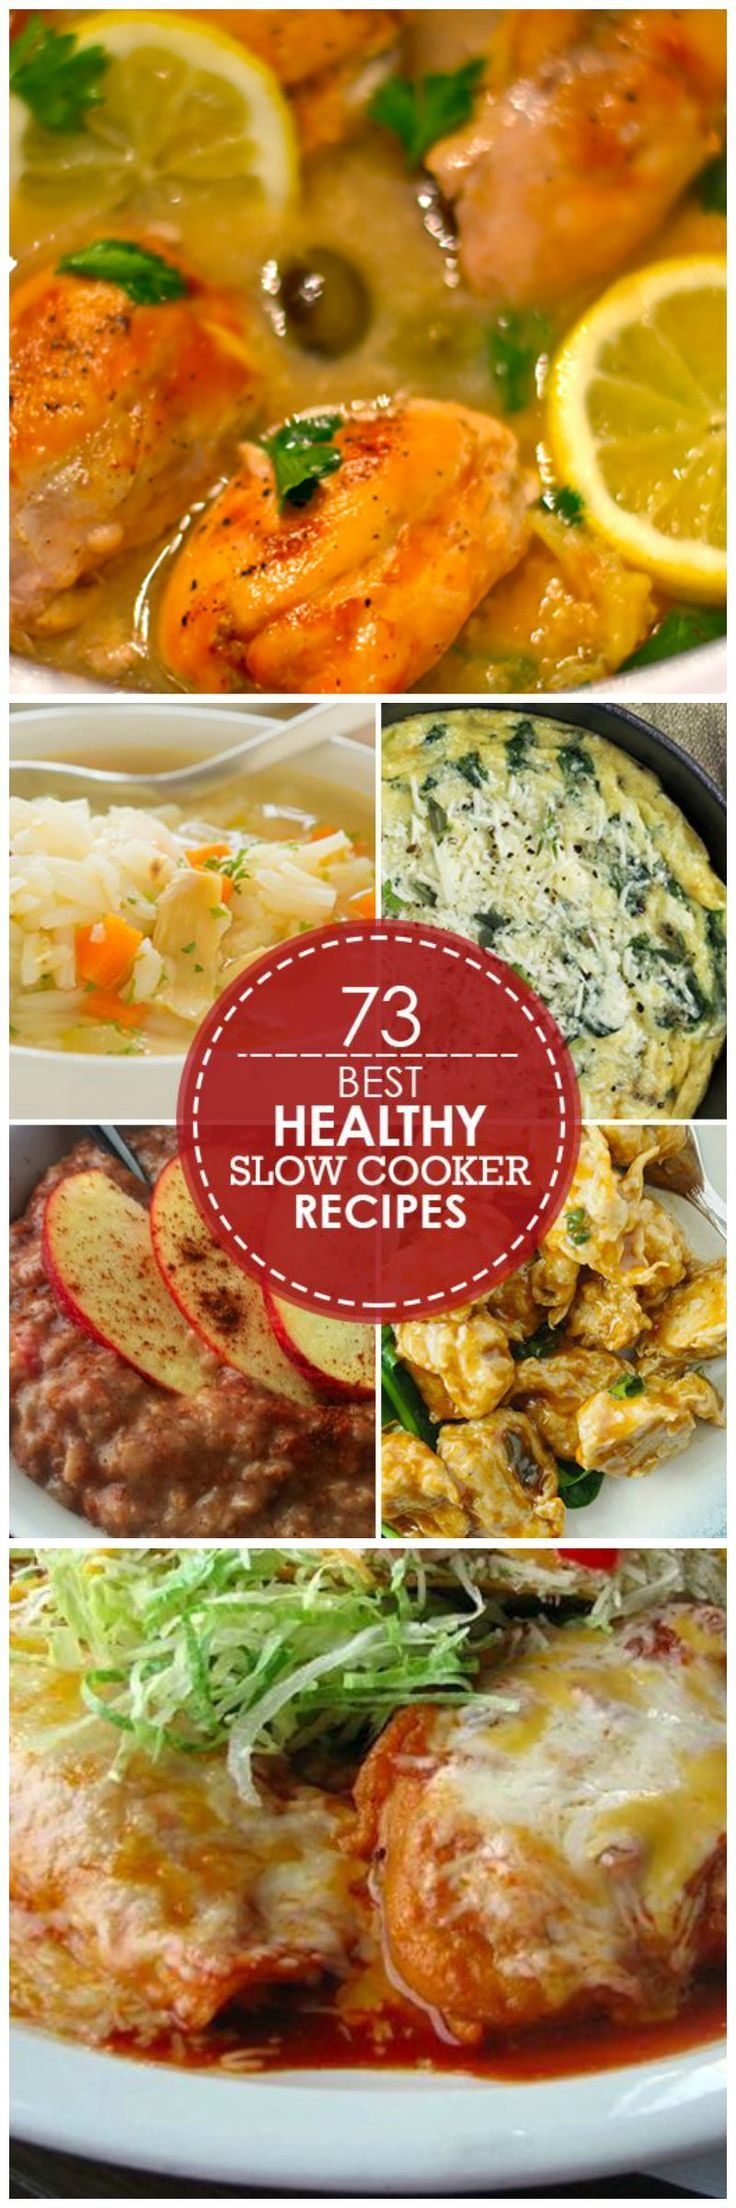 73 Healthy Slow Cooker Recipes // easy & keeps the kitchen cool #comfort